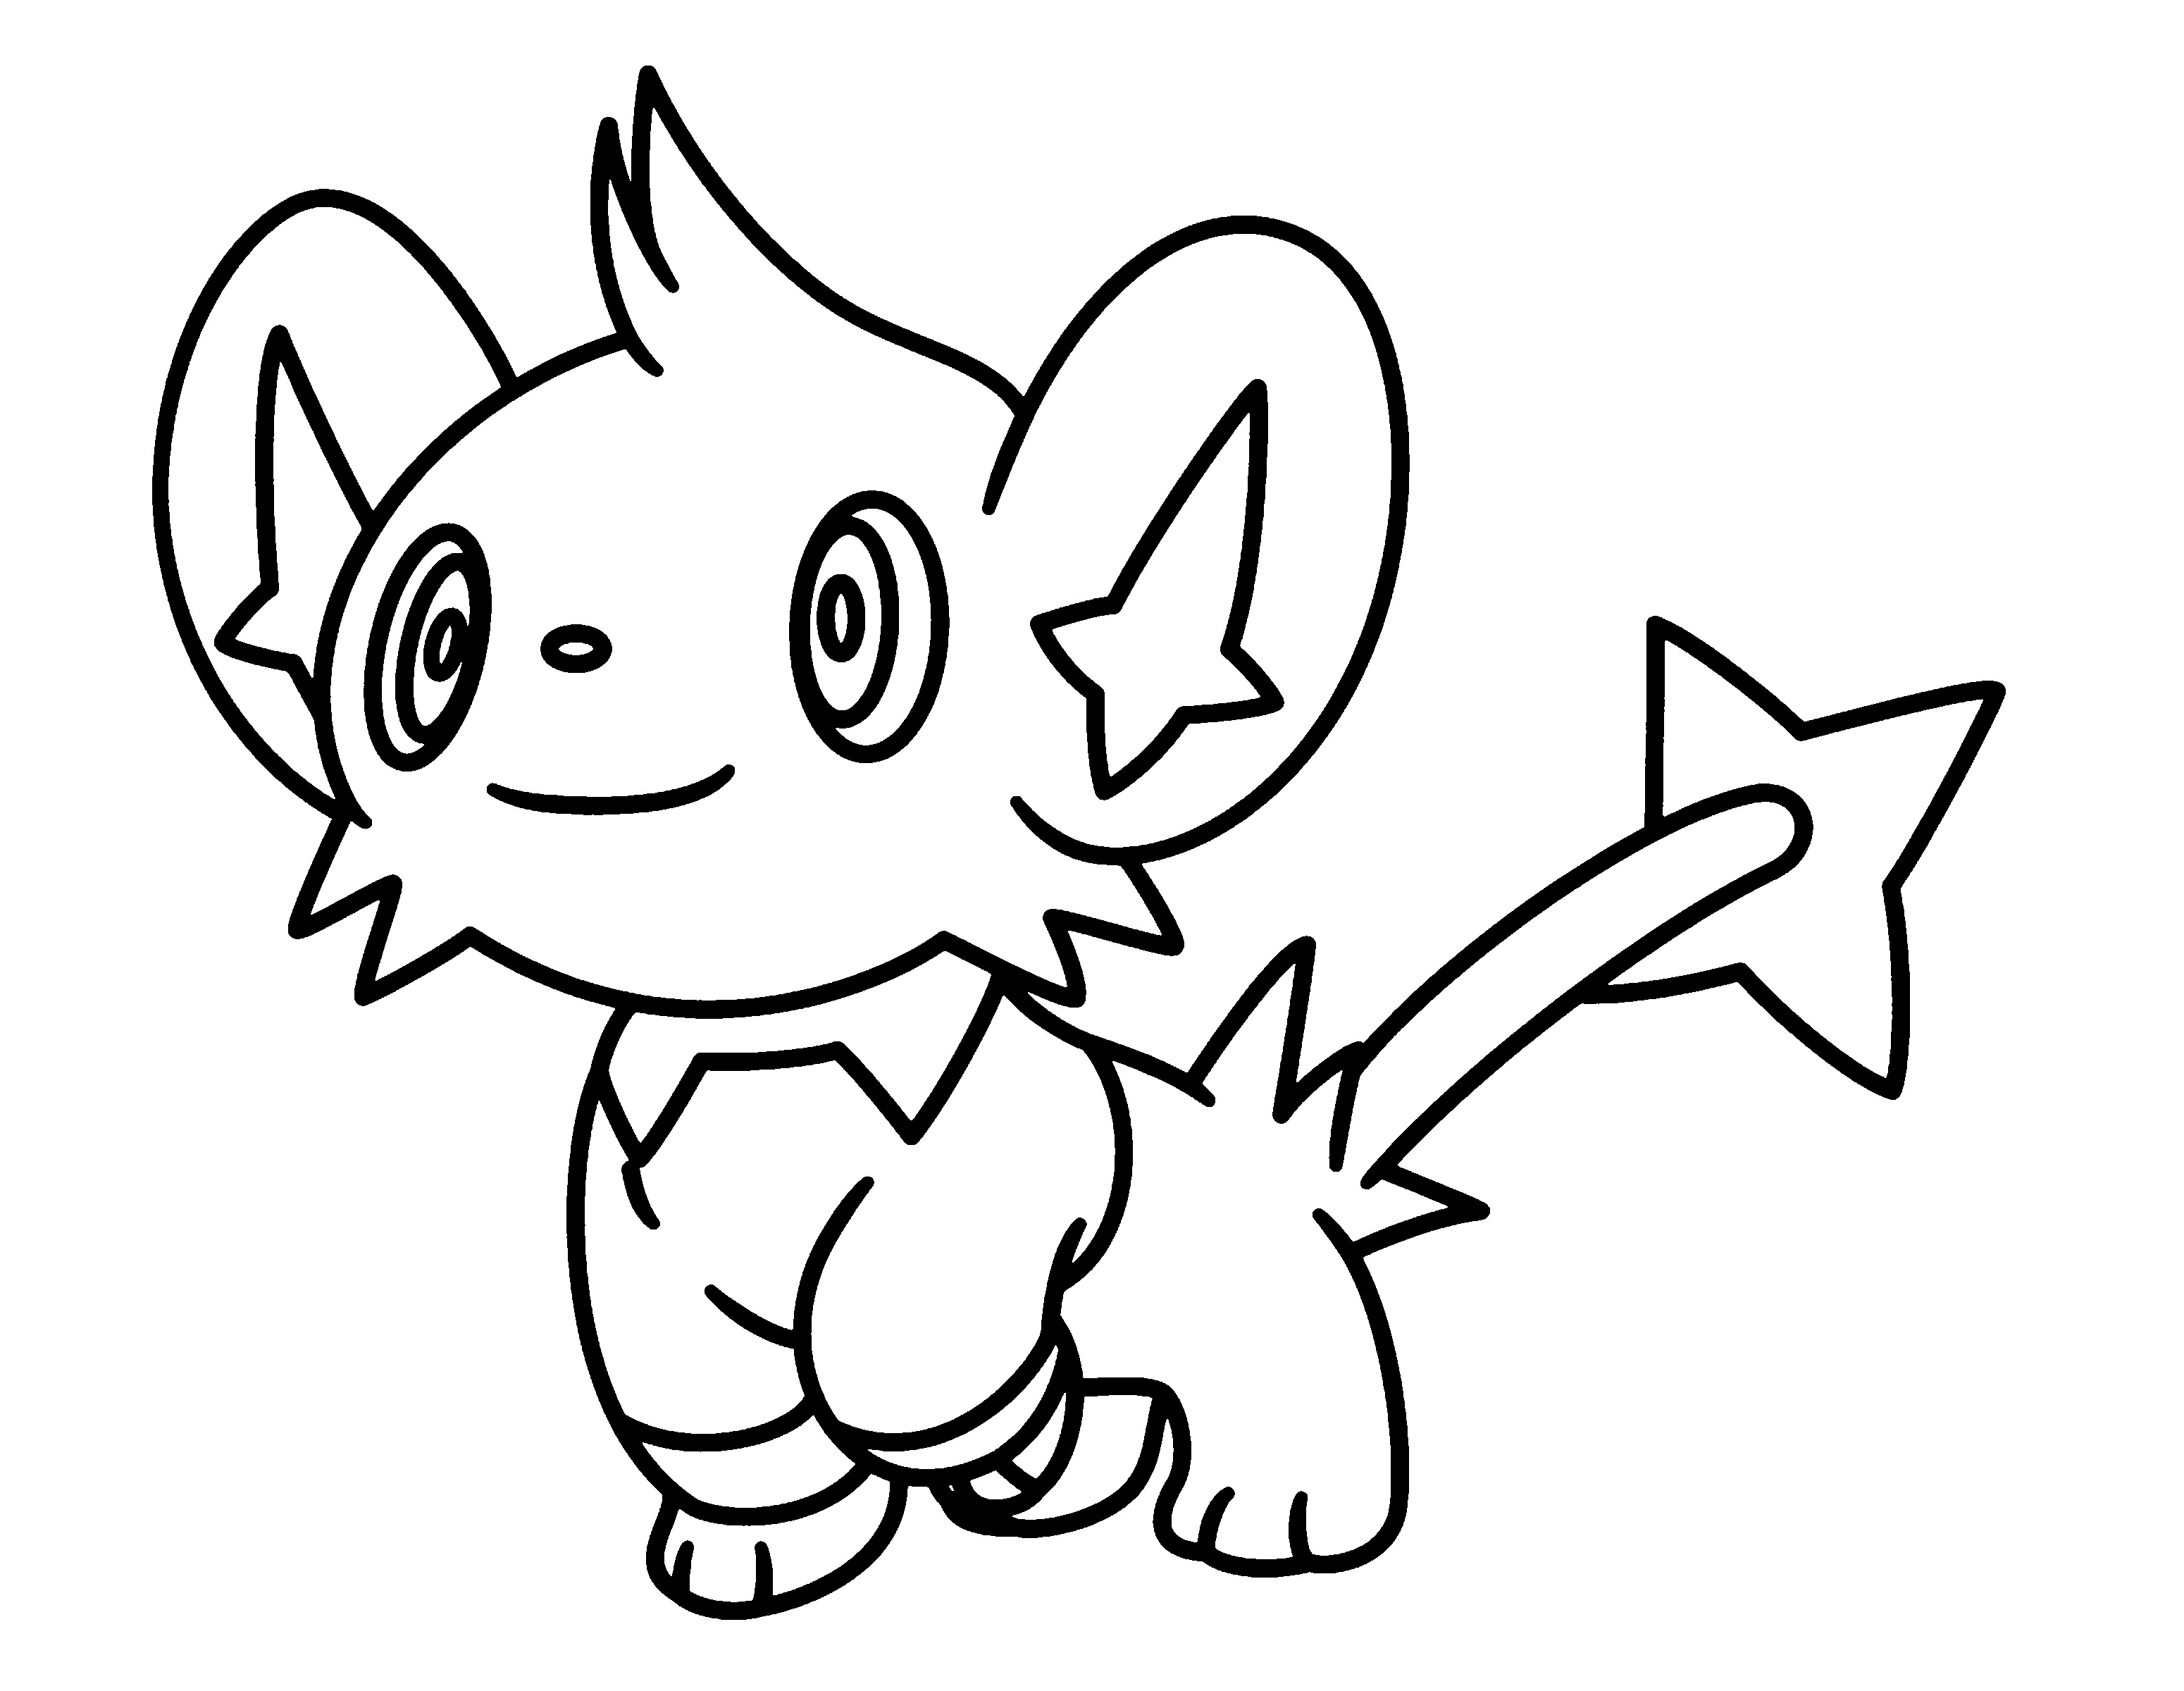 Coloring Pages Pokemon Printables Coloring Pages printable pokemon coloring pages me sheets